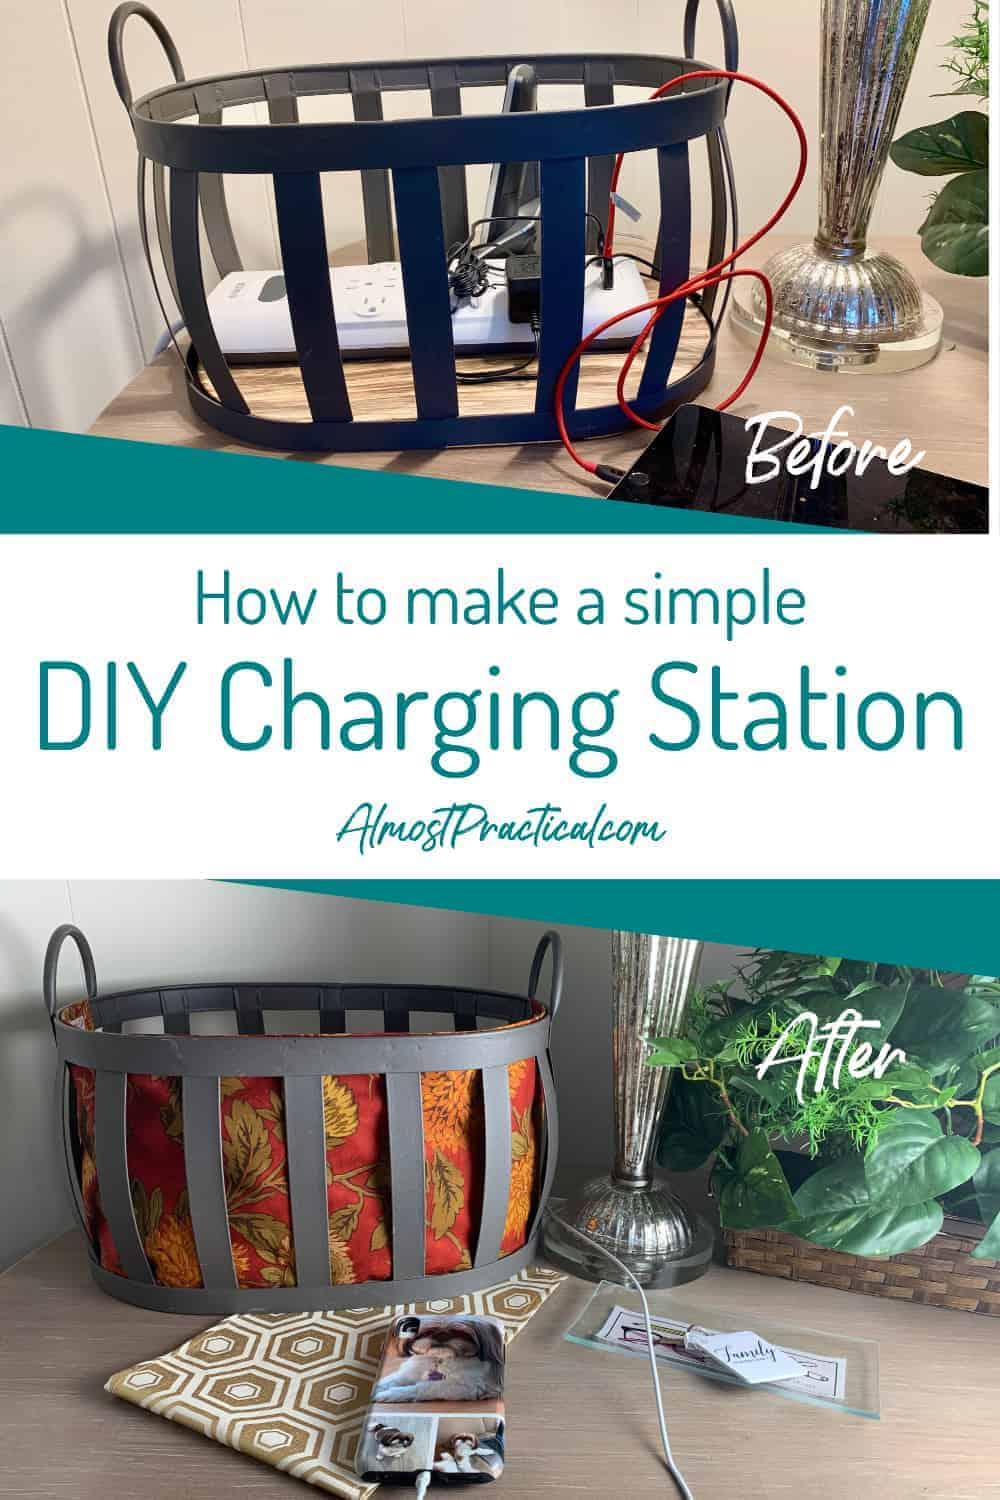 DIY charging station pictures before and after